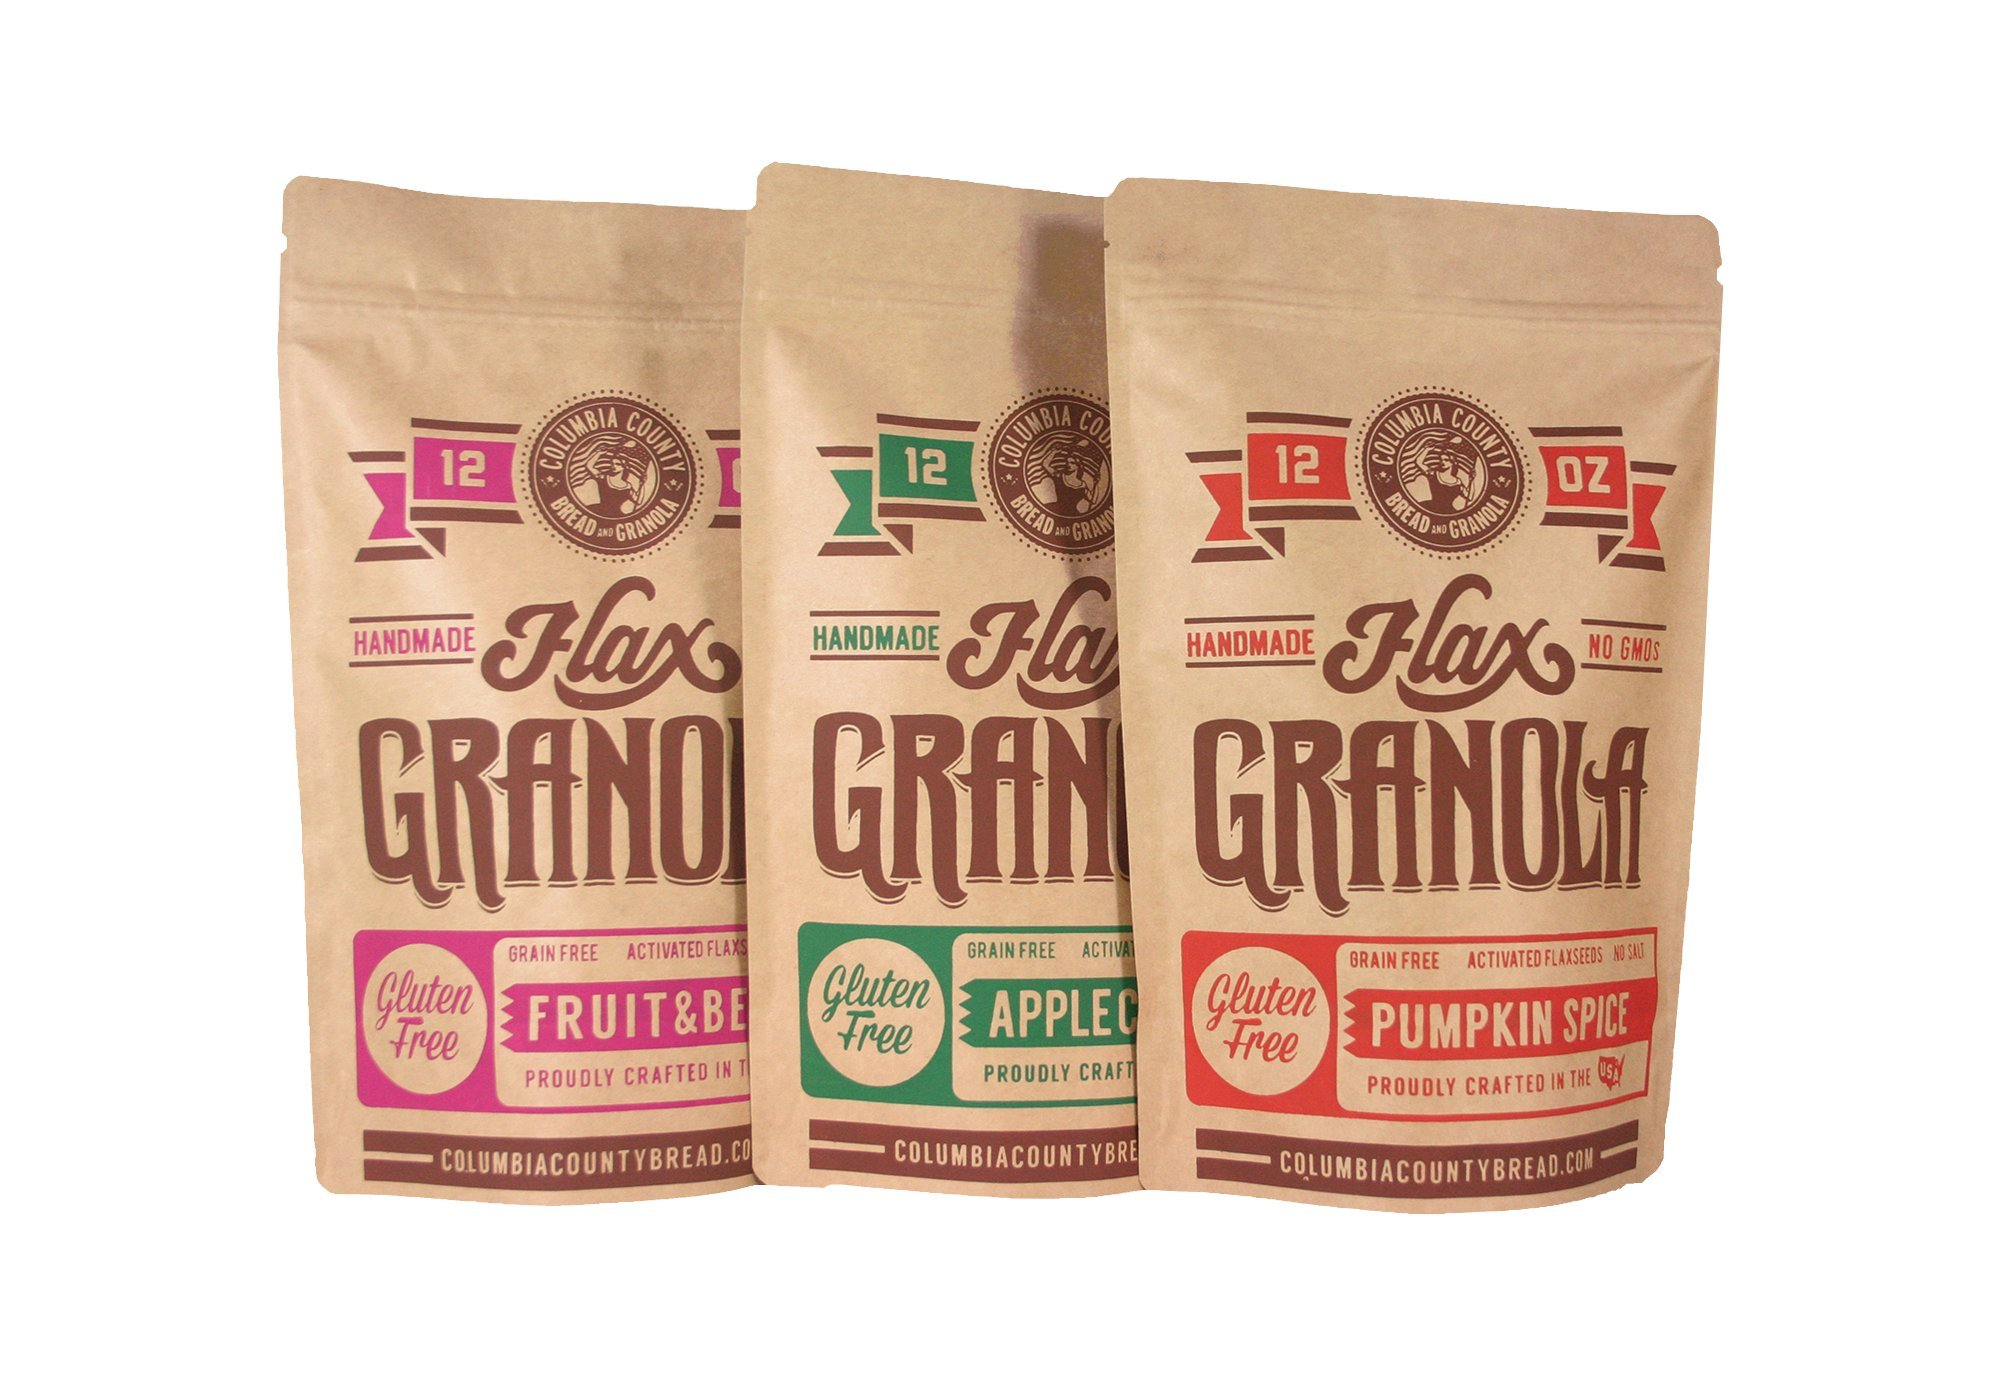 Flax Granola - Variety Pack: Fruit & Berry, Pumpkin Spice, and Apple Cinnamon - The Plan Friendly, Gluten Free - 12 oz, 3 pack by Columbia County Bread & Granola